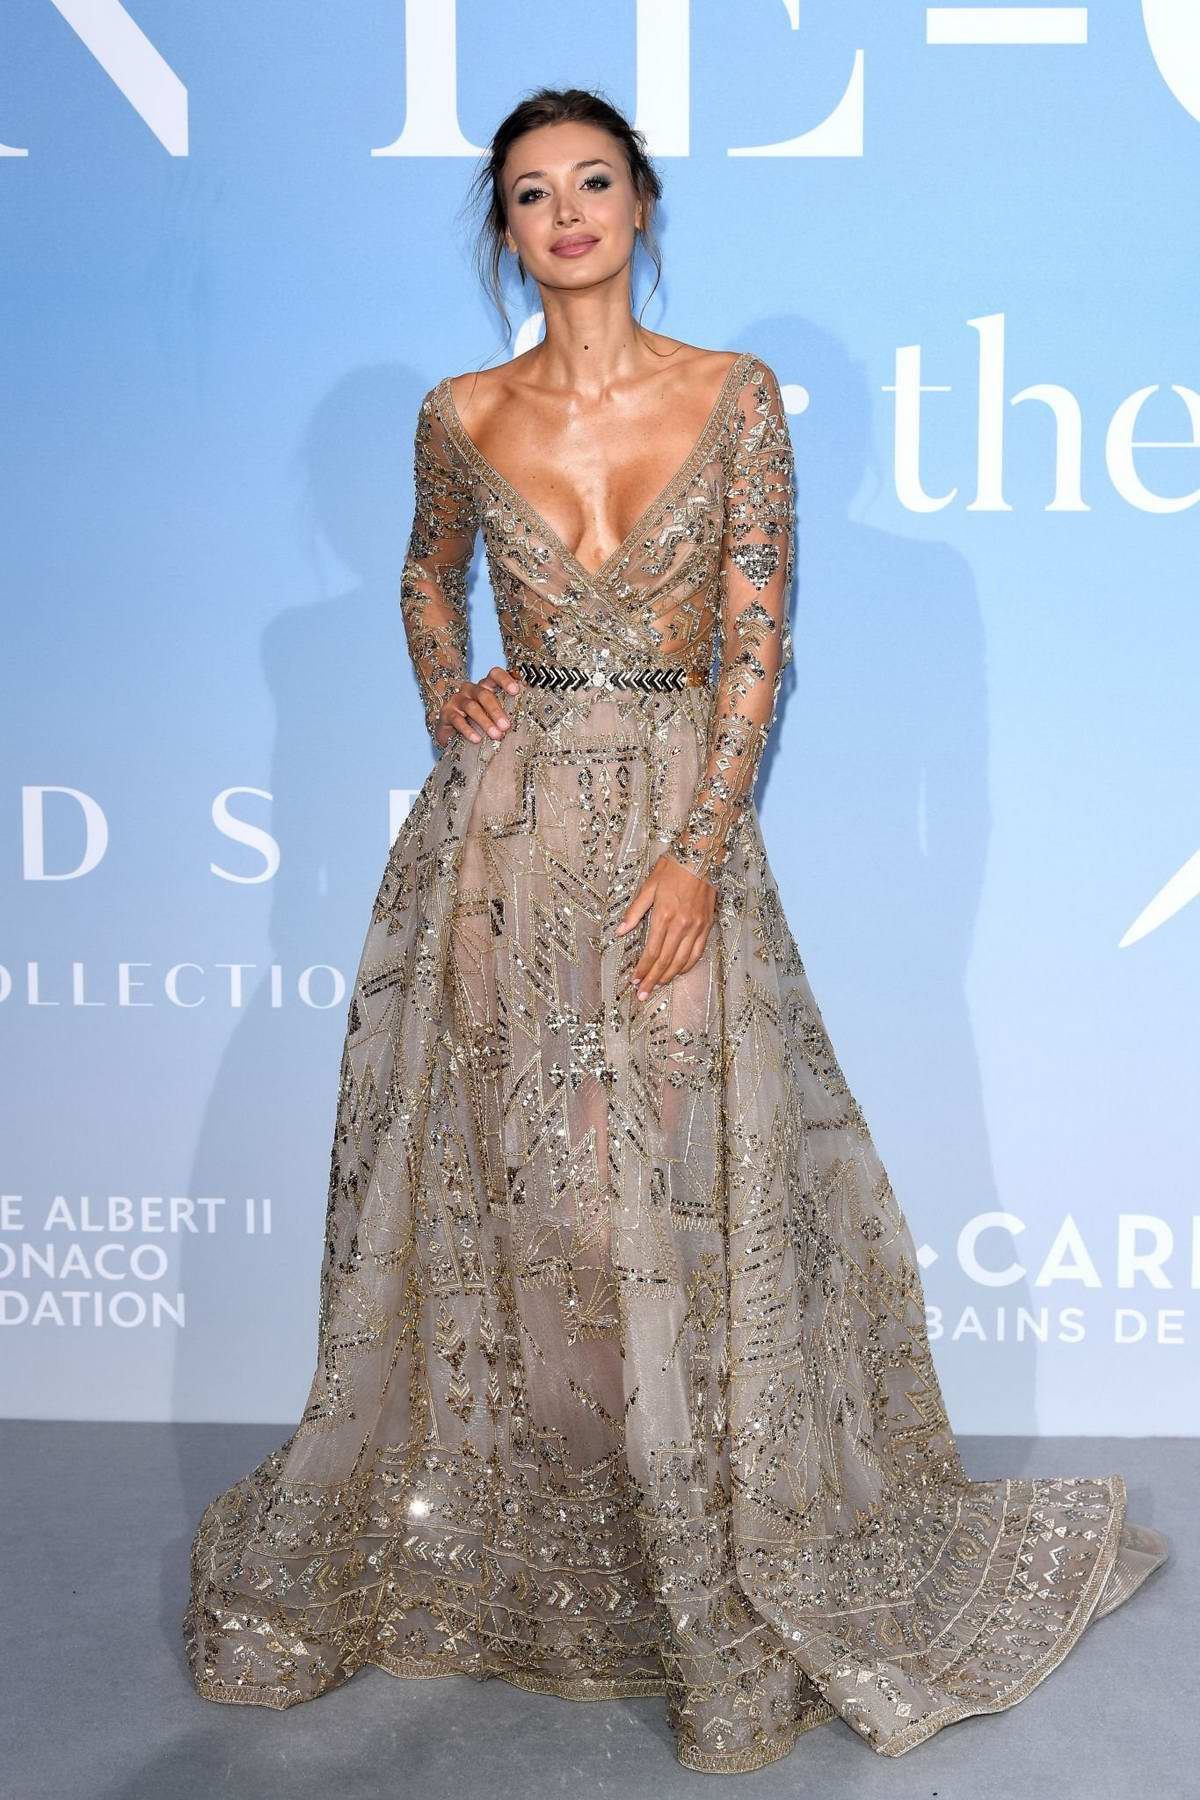 Lara Leito attends the Gala For The Global Ocean in Monte Carlo, Monaco